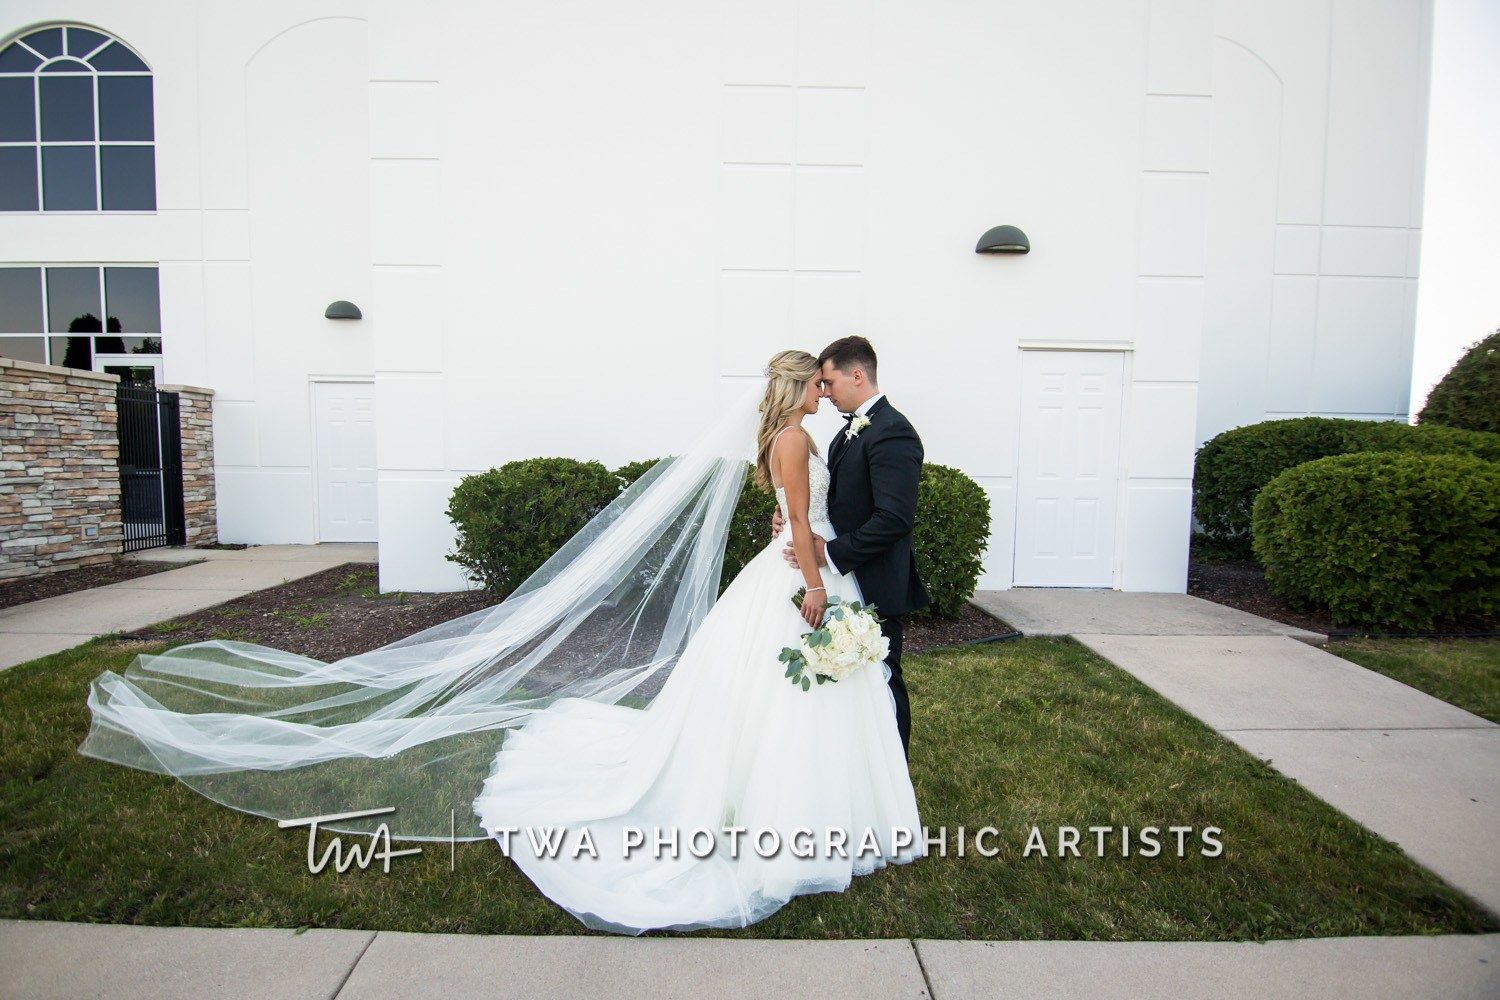 Chicago-Wedding-Photographer-TWA-Photographic-Artists-DiNolfo_s-Banquets_Augustine_Evans_MJ_WK-1041